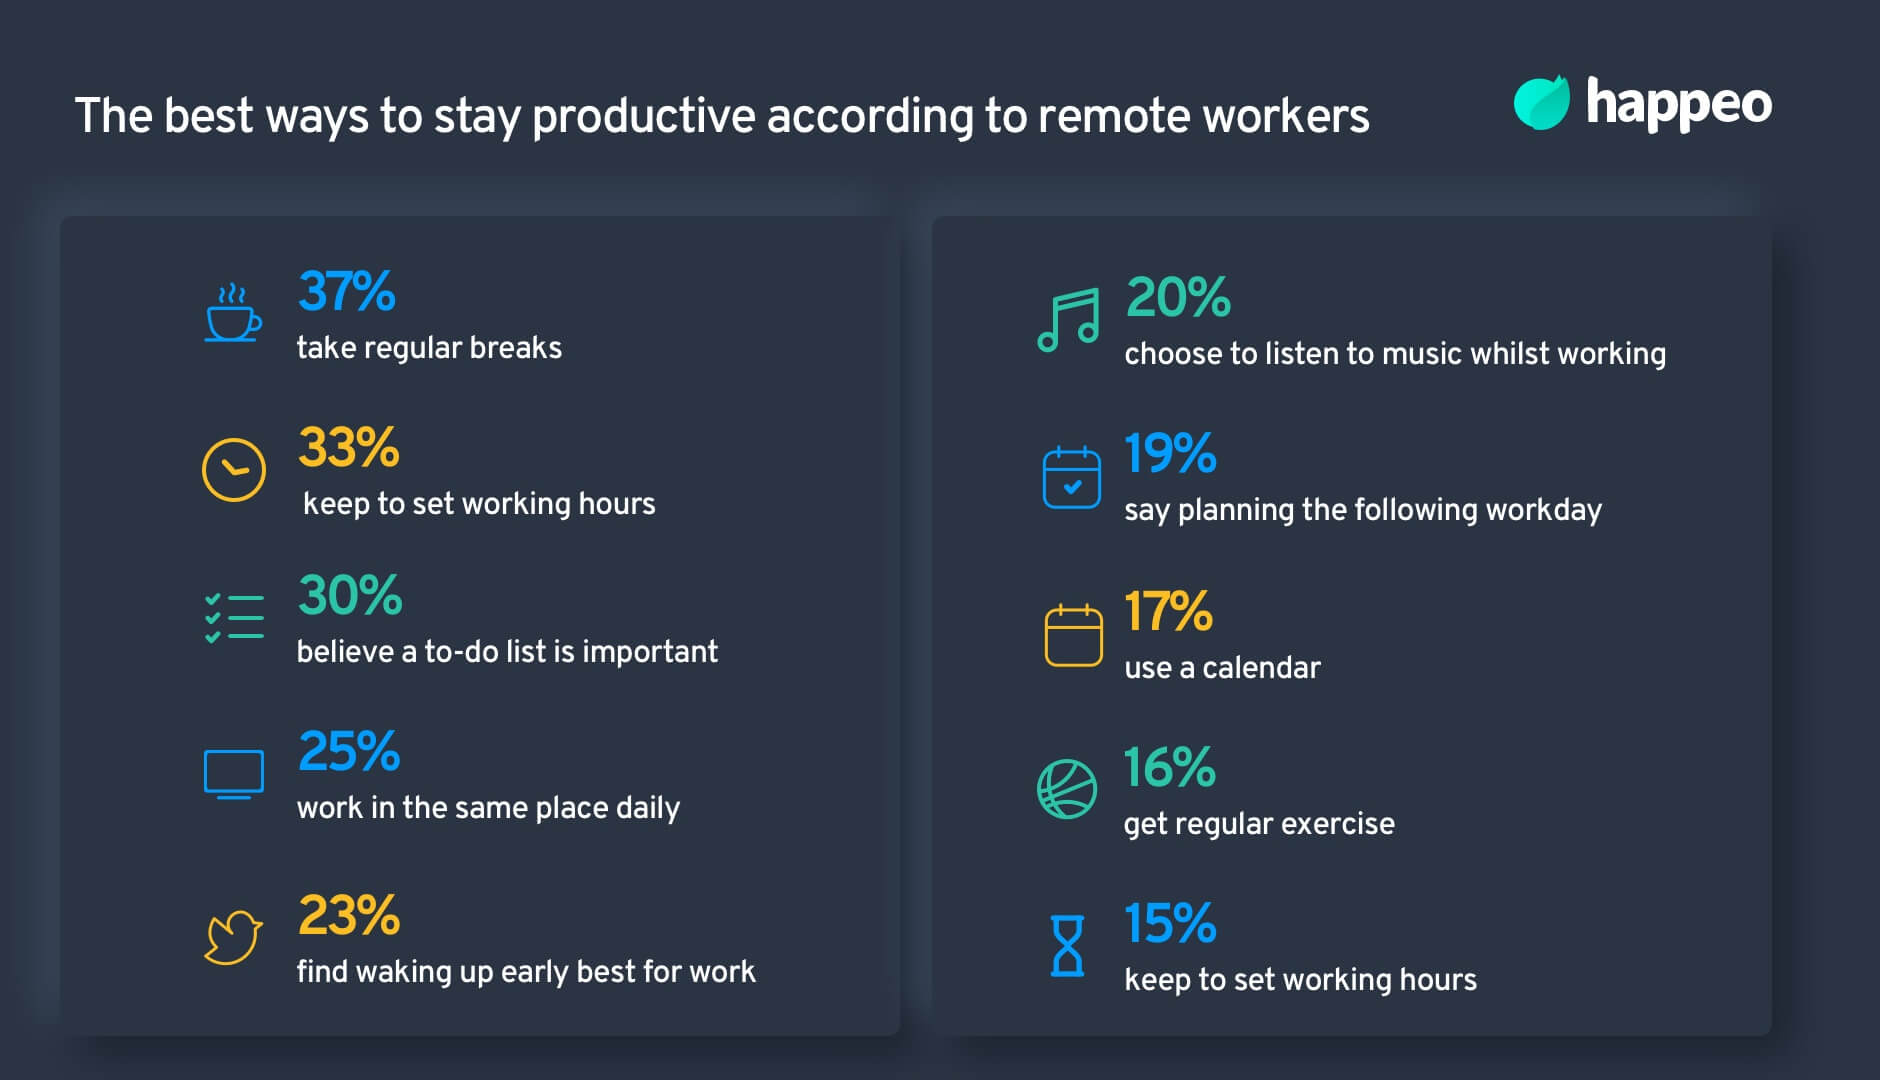 staying productive while working remotely